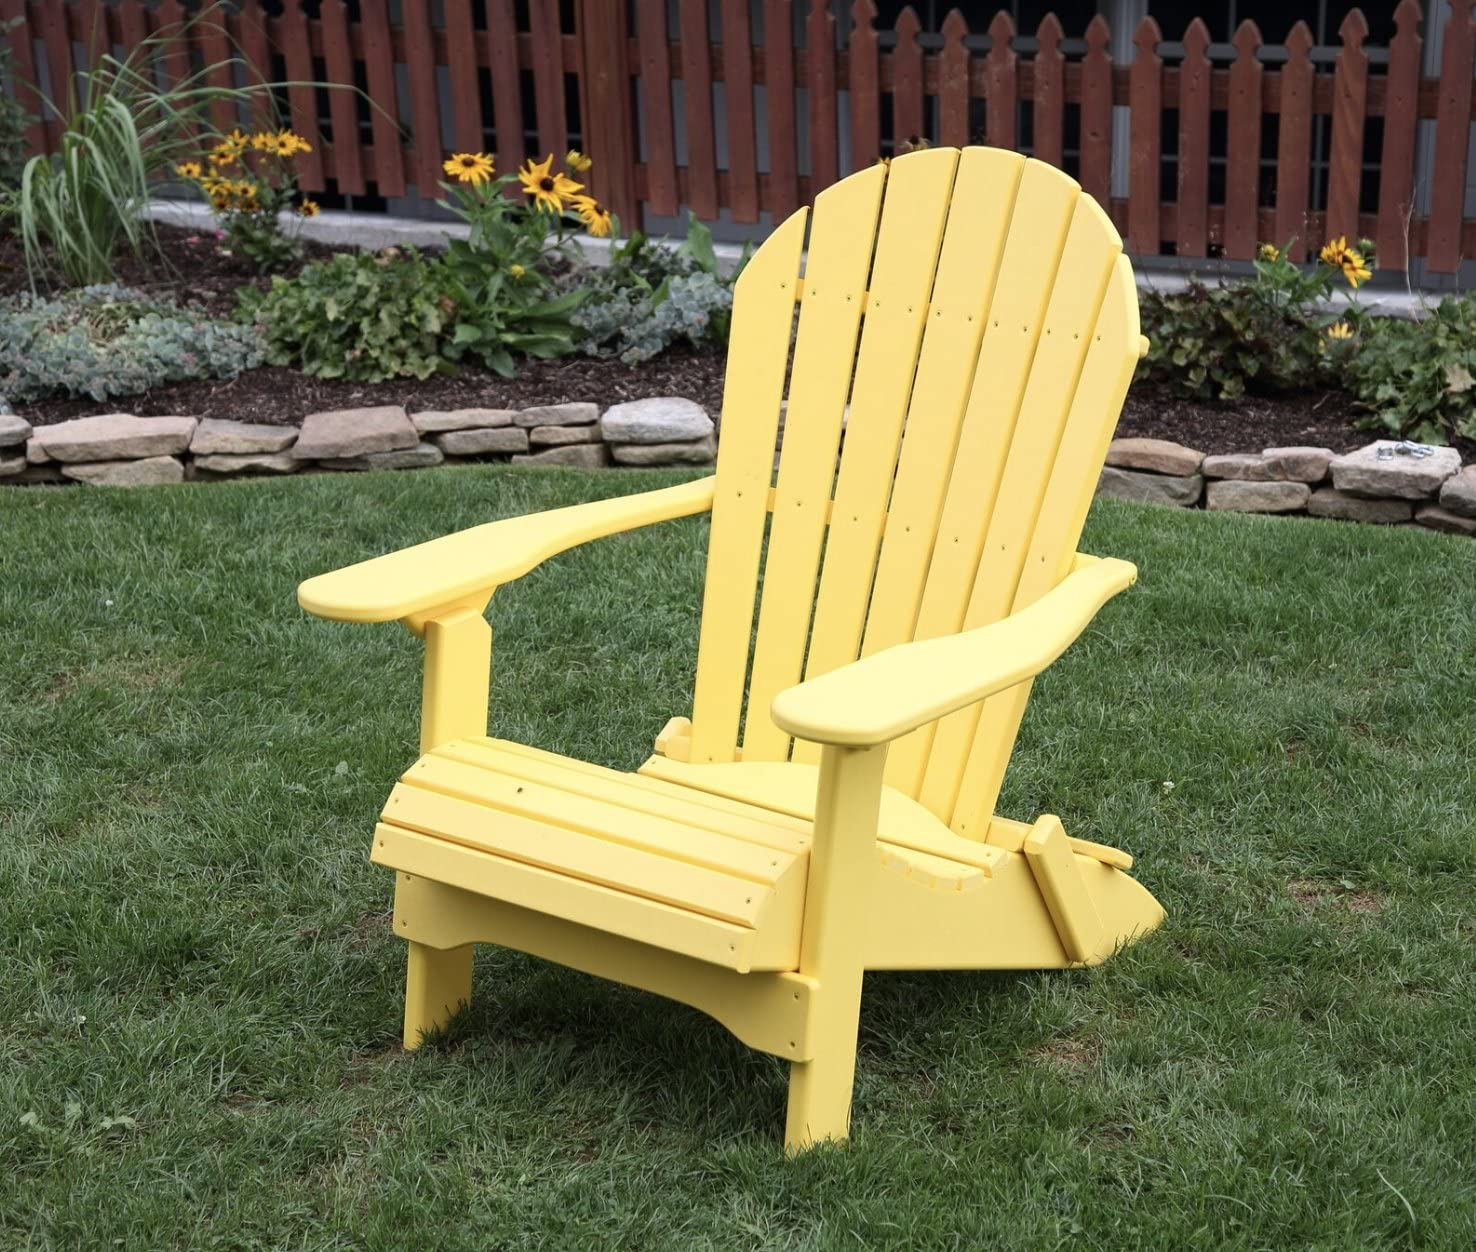 Yellow-Poly Lumber Folding Adirondack Chair with Rolled Seating Heavy Duty Everlasting Lifetime PolyTuf HDPE – Made in USA – Amish Crafted